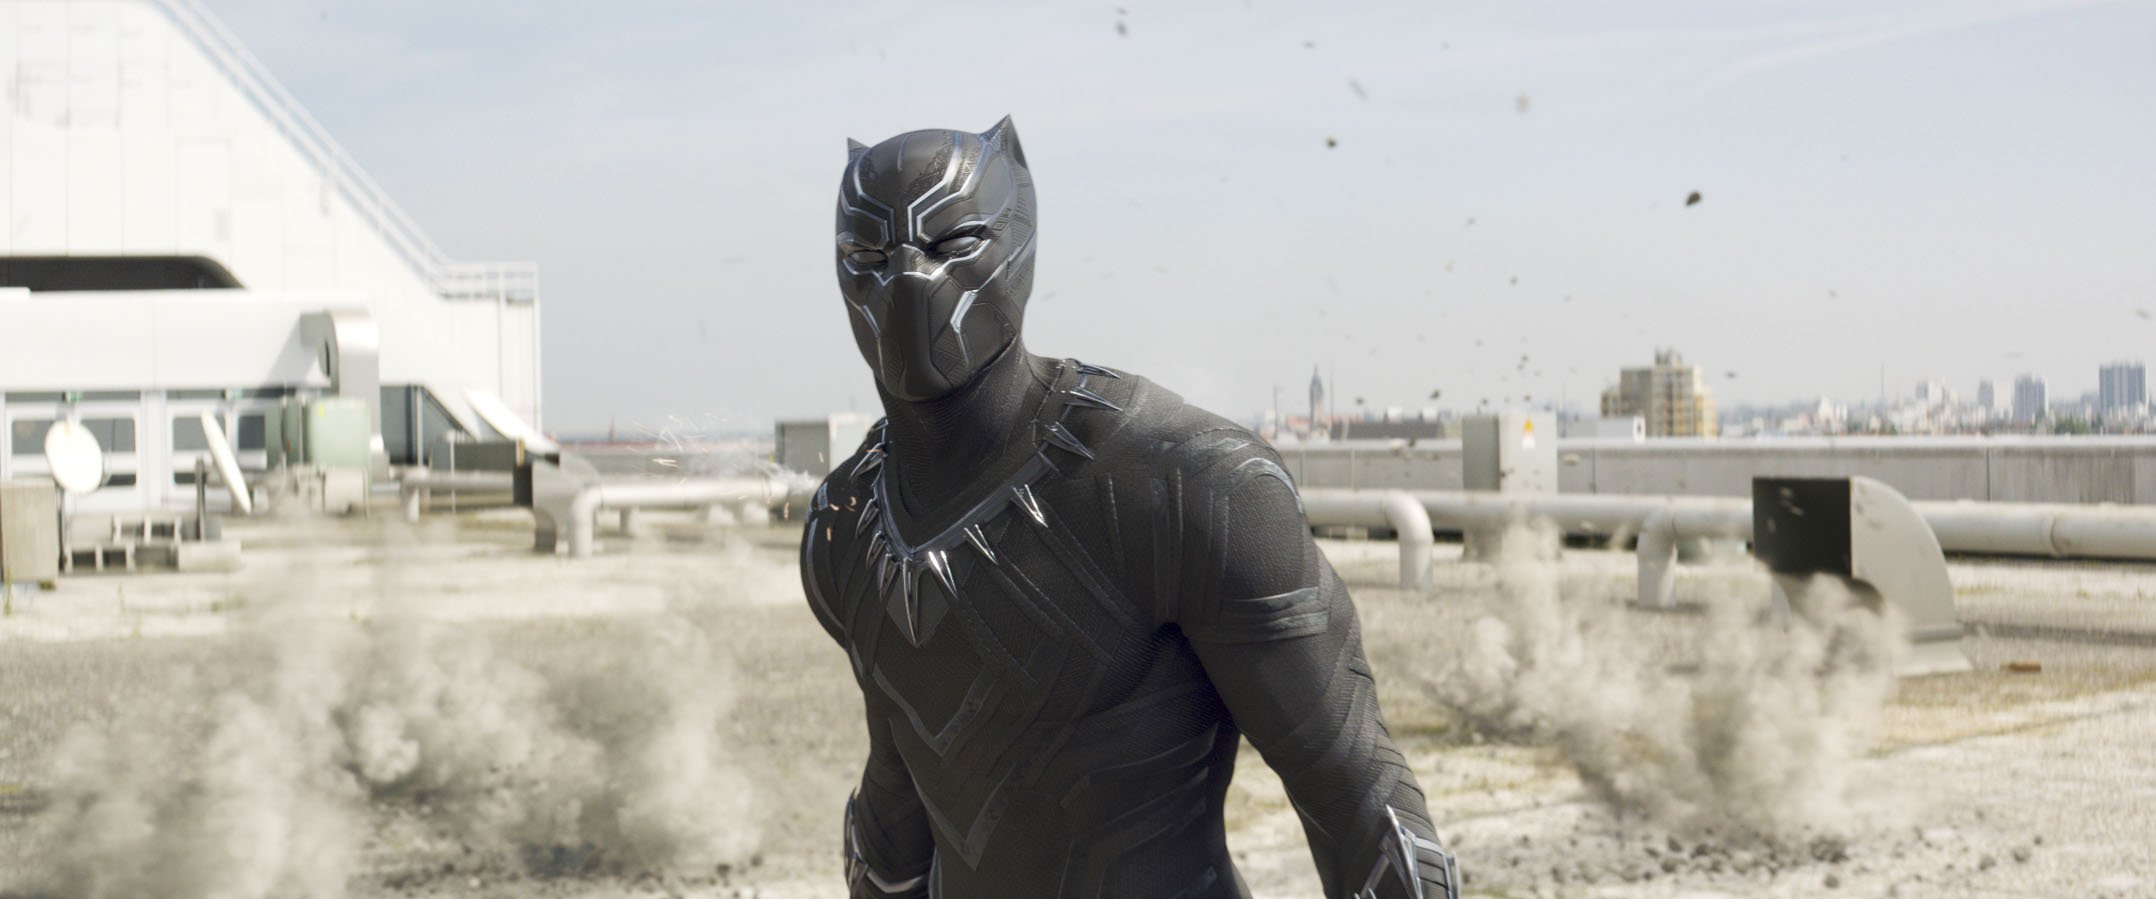 Black Panther is up for Best Picture at the Golden Globes and it's so well deserved